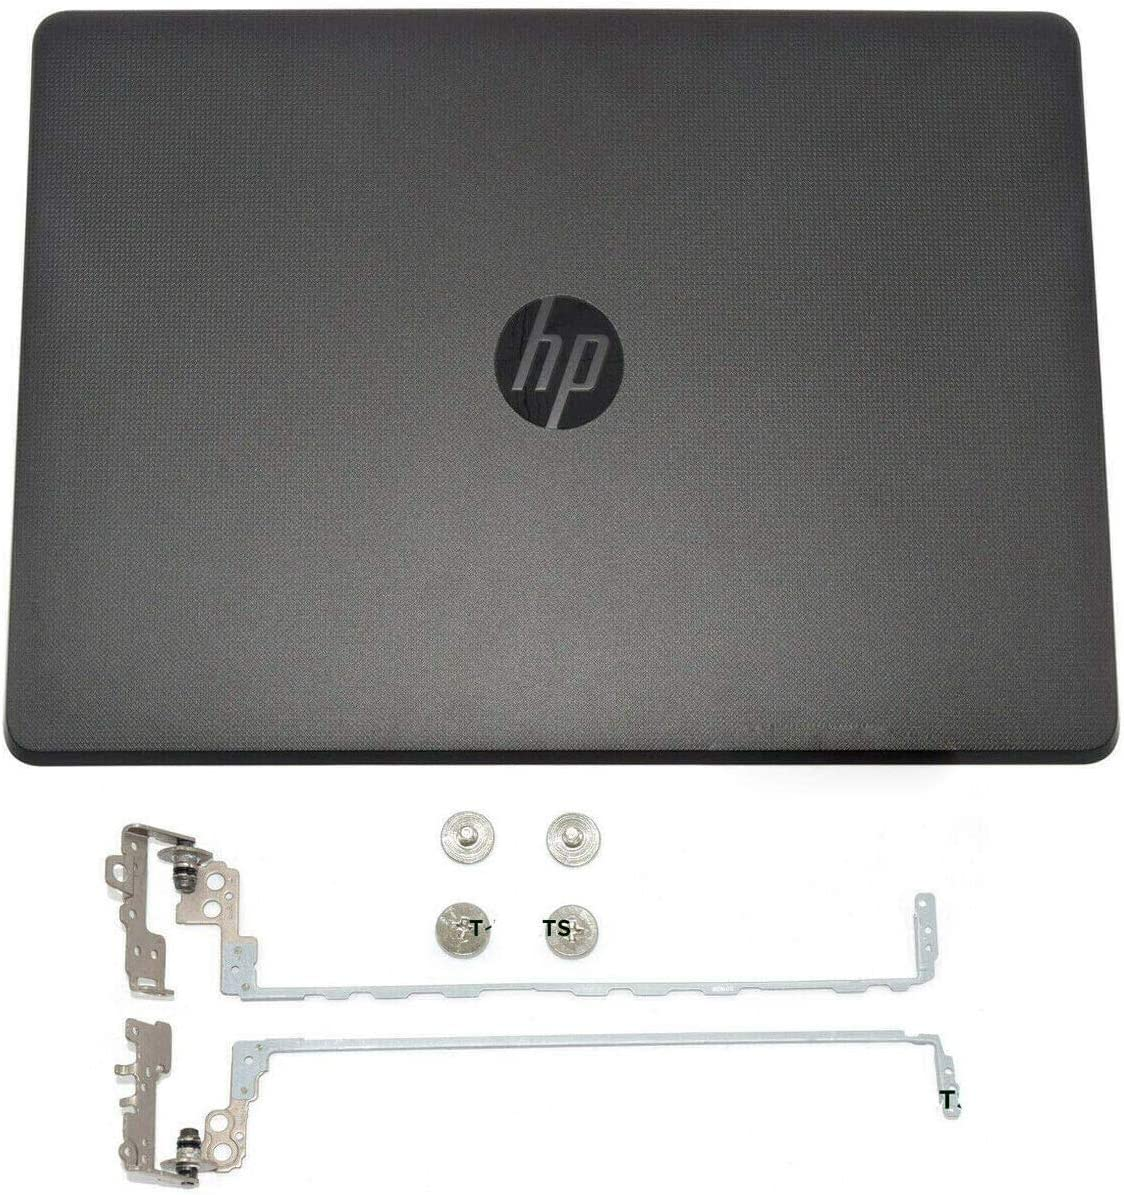 LhyParts New LCD Back Cover Rear Lid & Hinges 924899-001 Black for HP 250 G6 255 G6 256 258 G6 15-BS 15T-BR 15Q-BU 15T-BS 15-BW